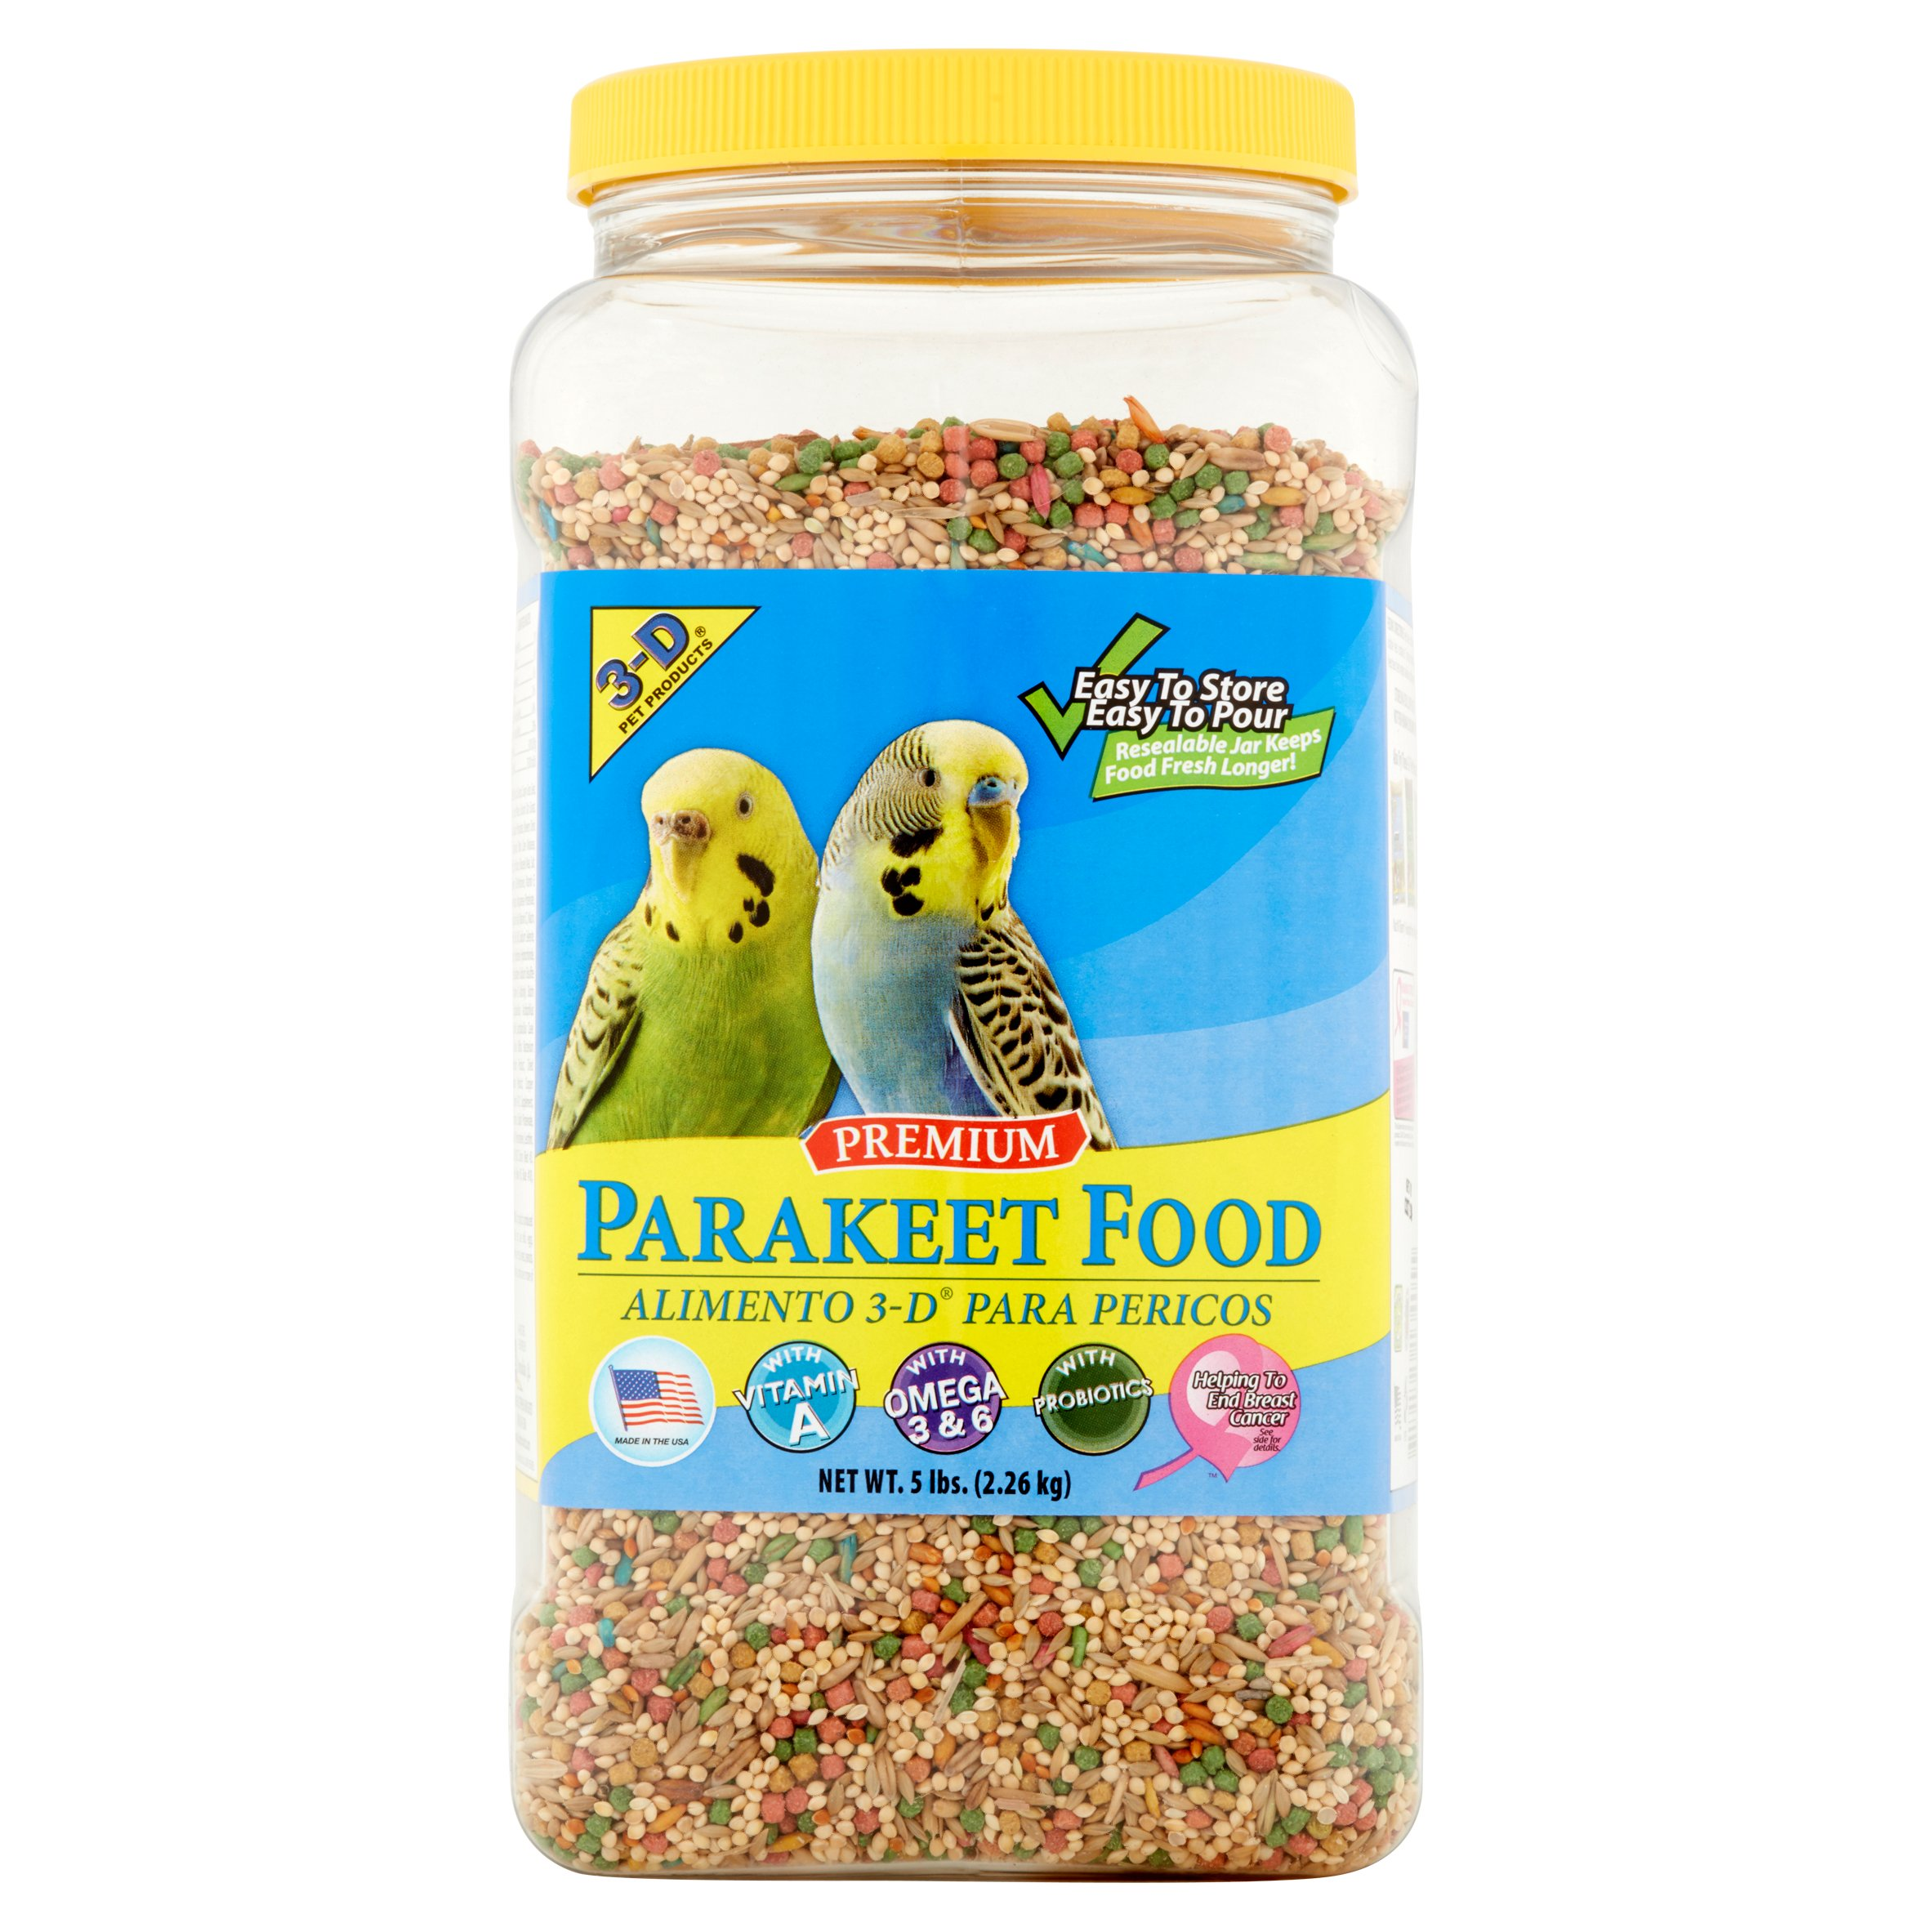 3-D Pet Products Premium Parakeet Food, 5 lbs